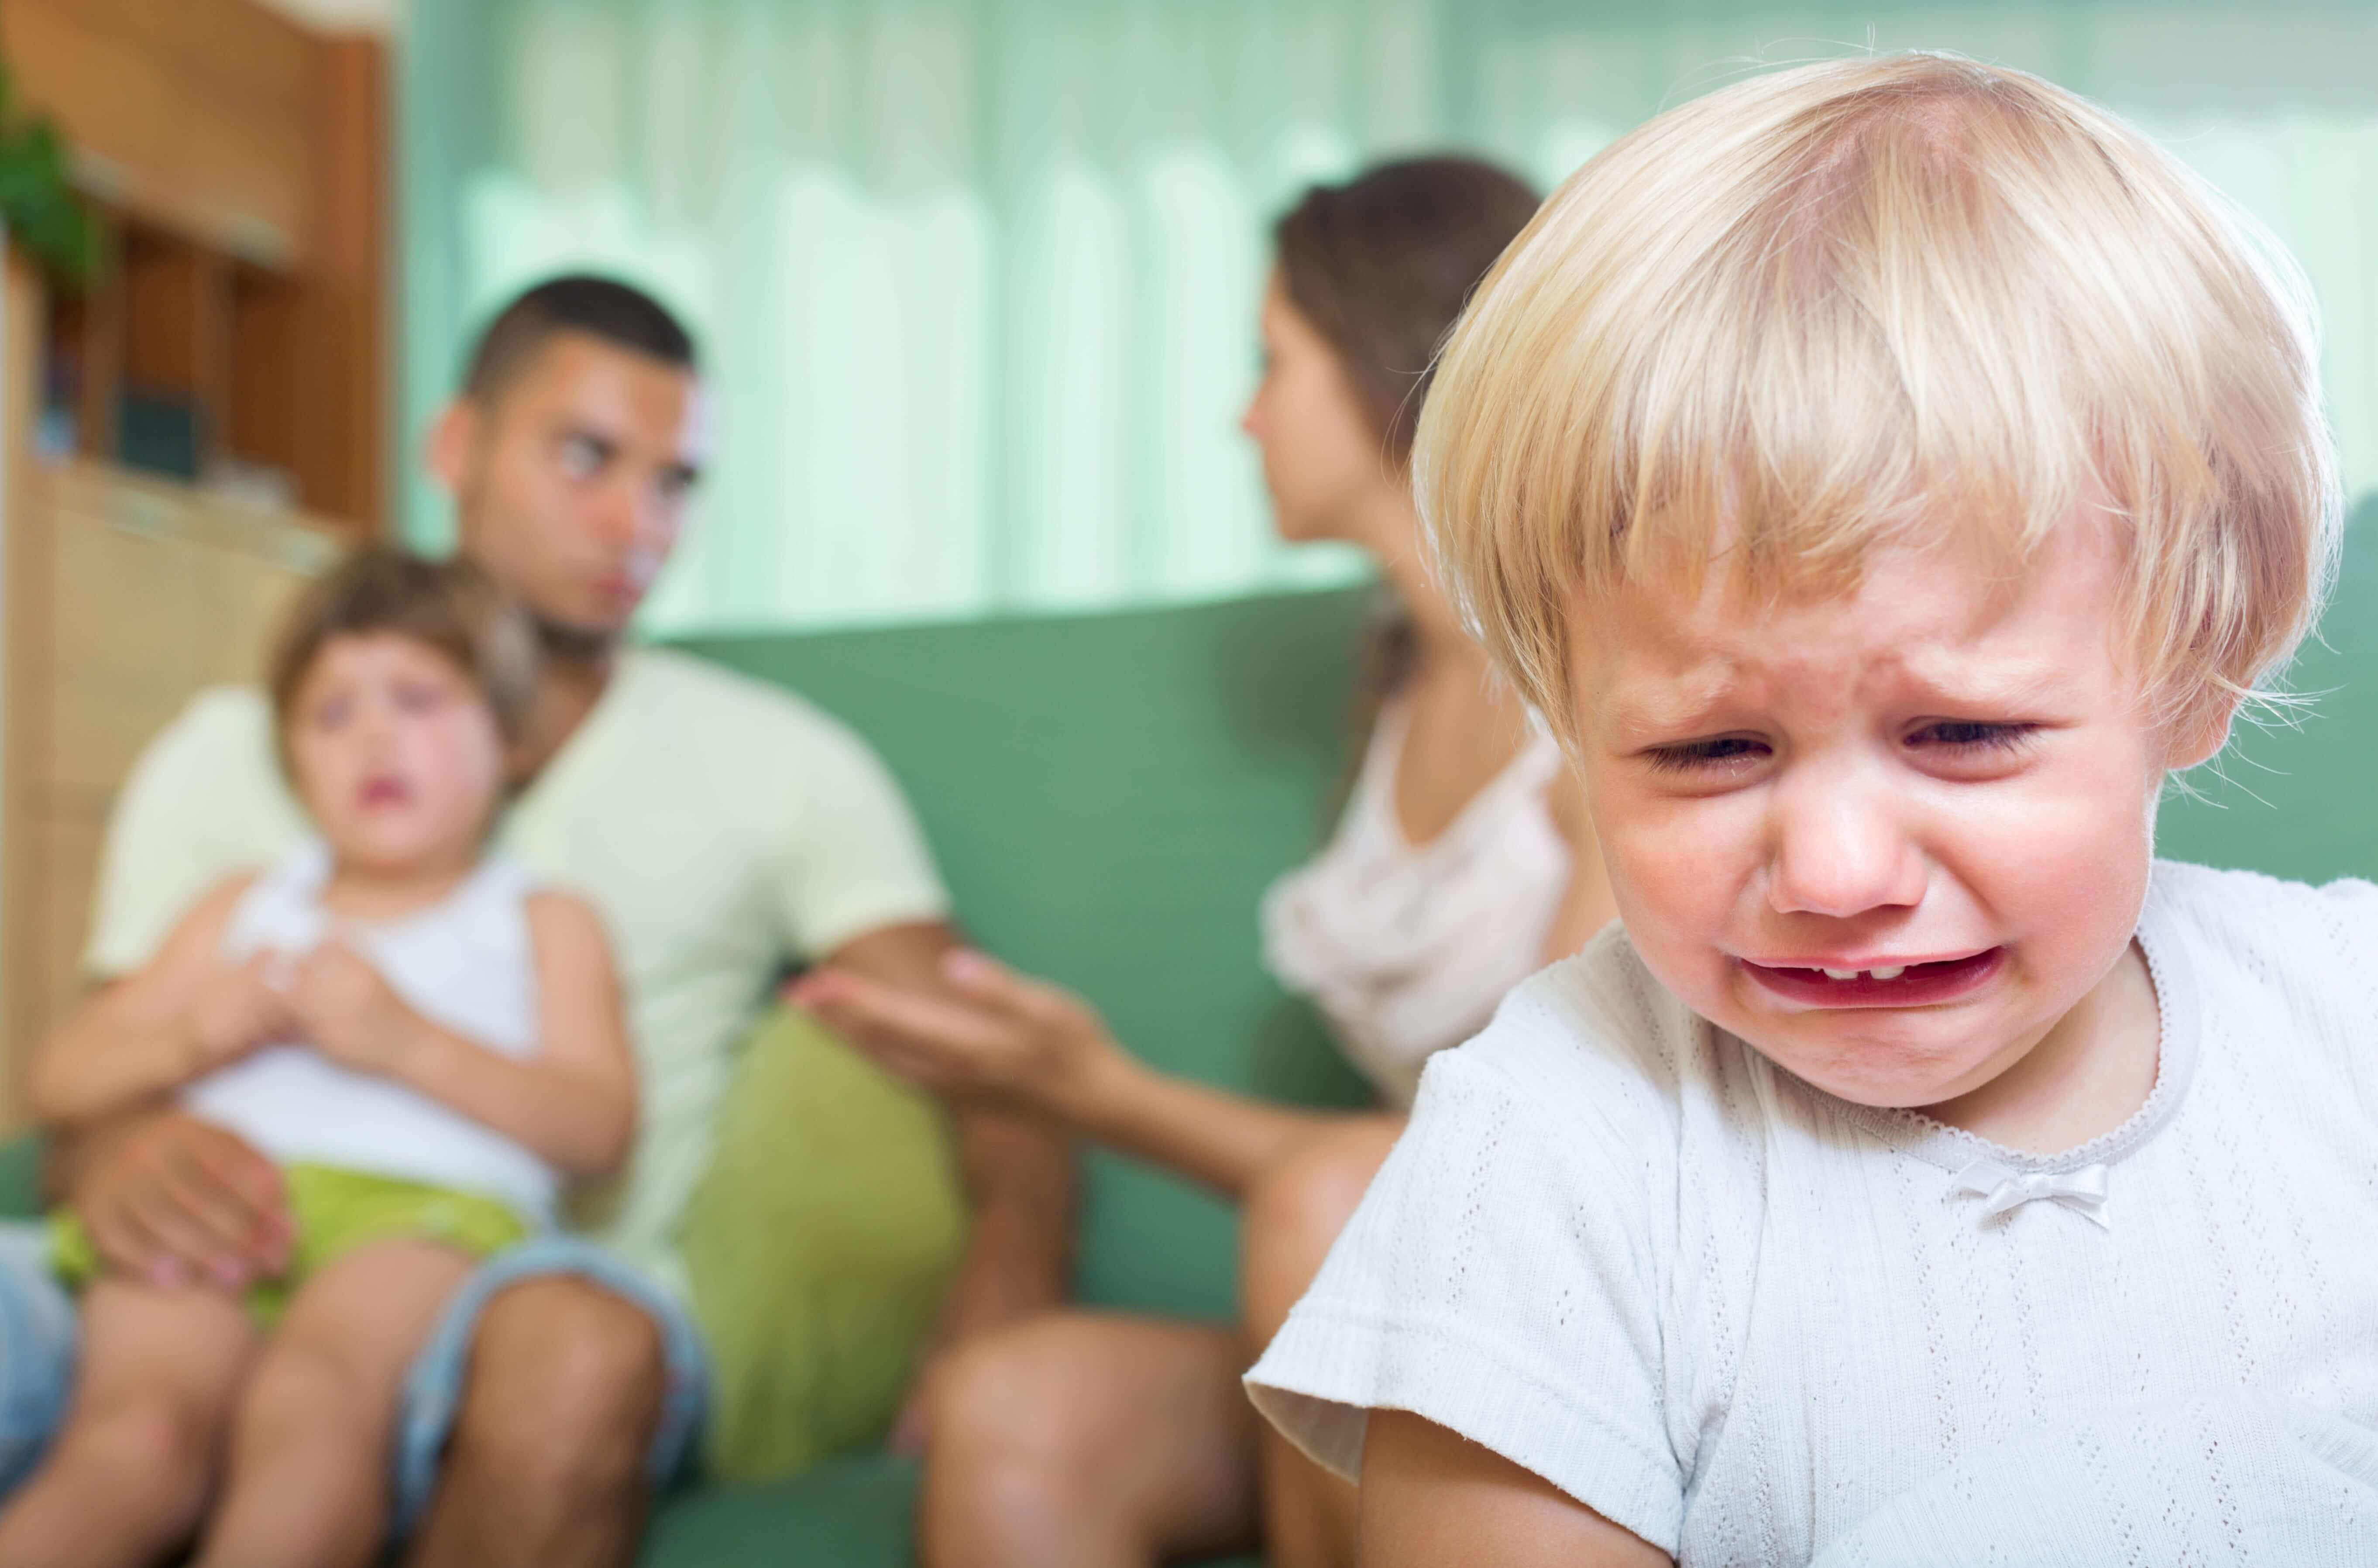 los-alamitos-child-custody-attorney